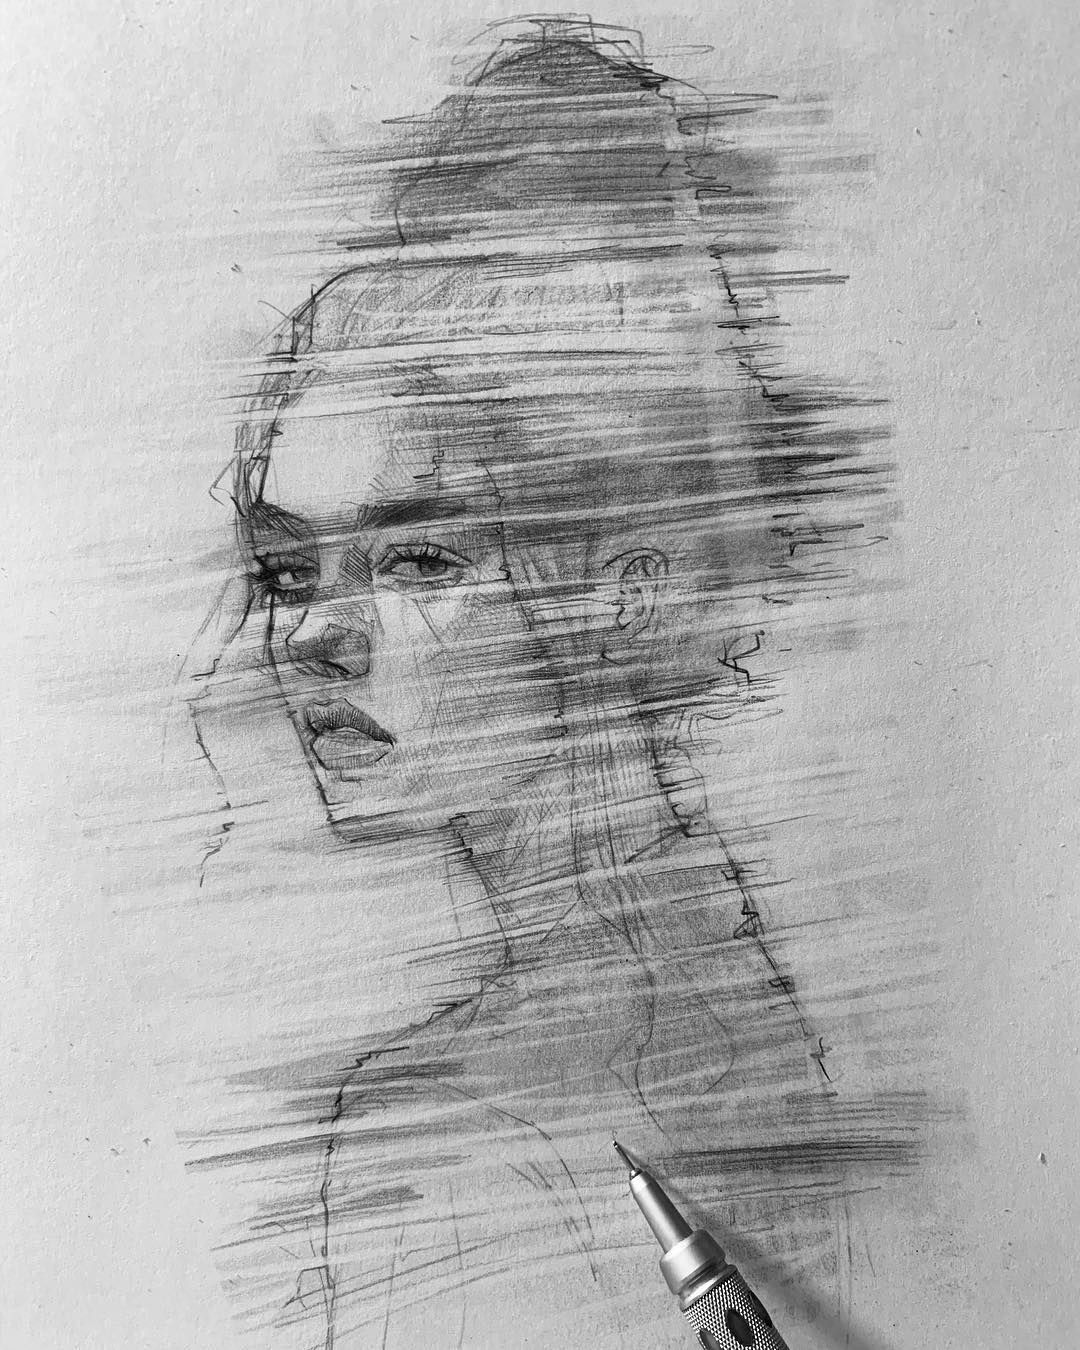 Pencil sketch artist efraín malo continue reading and for more sketch → view website